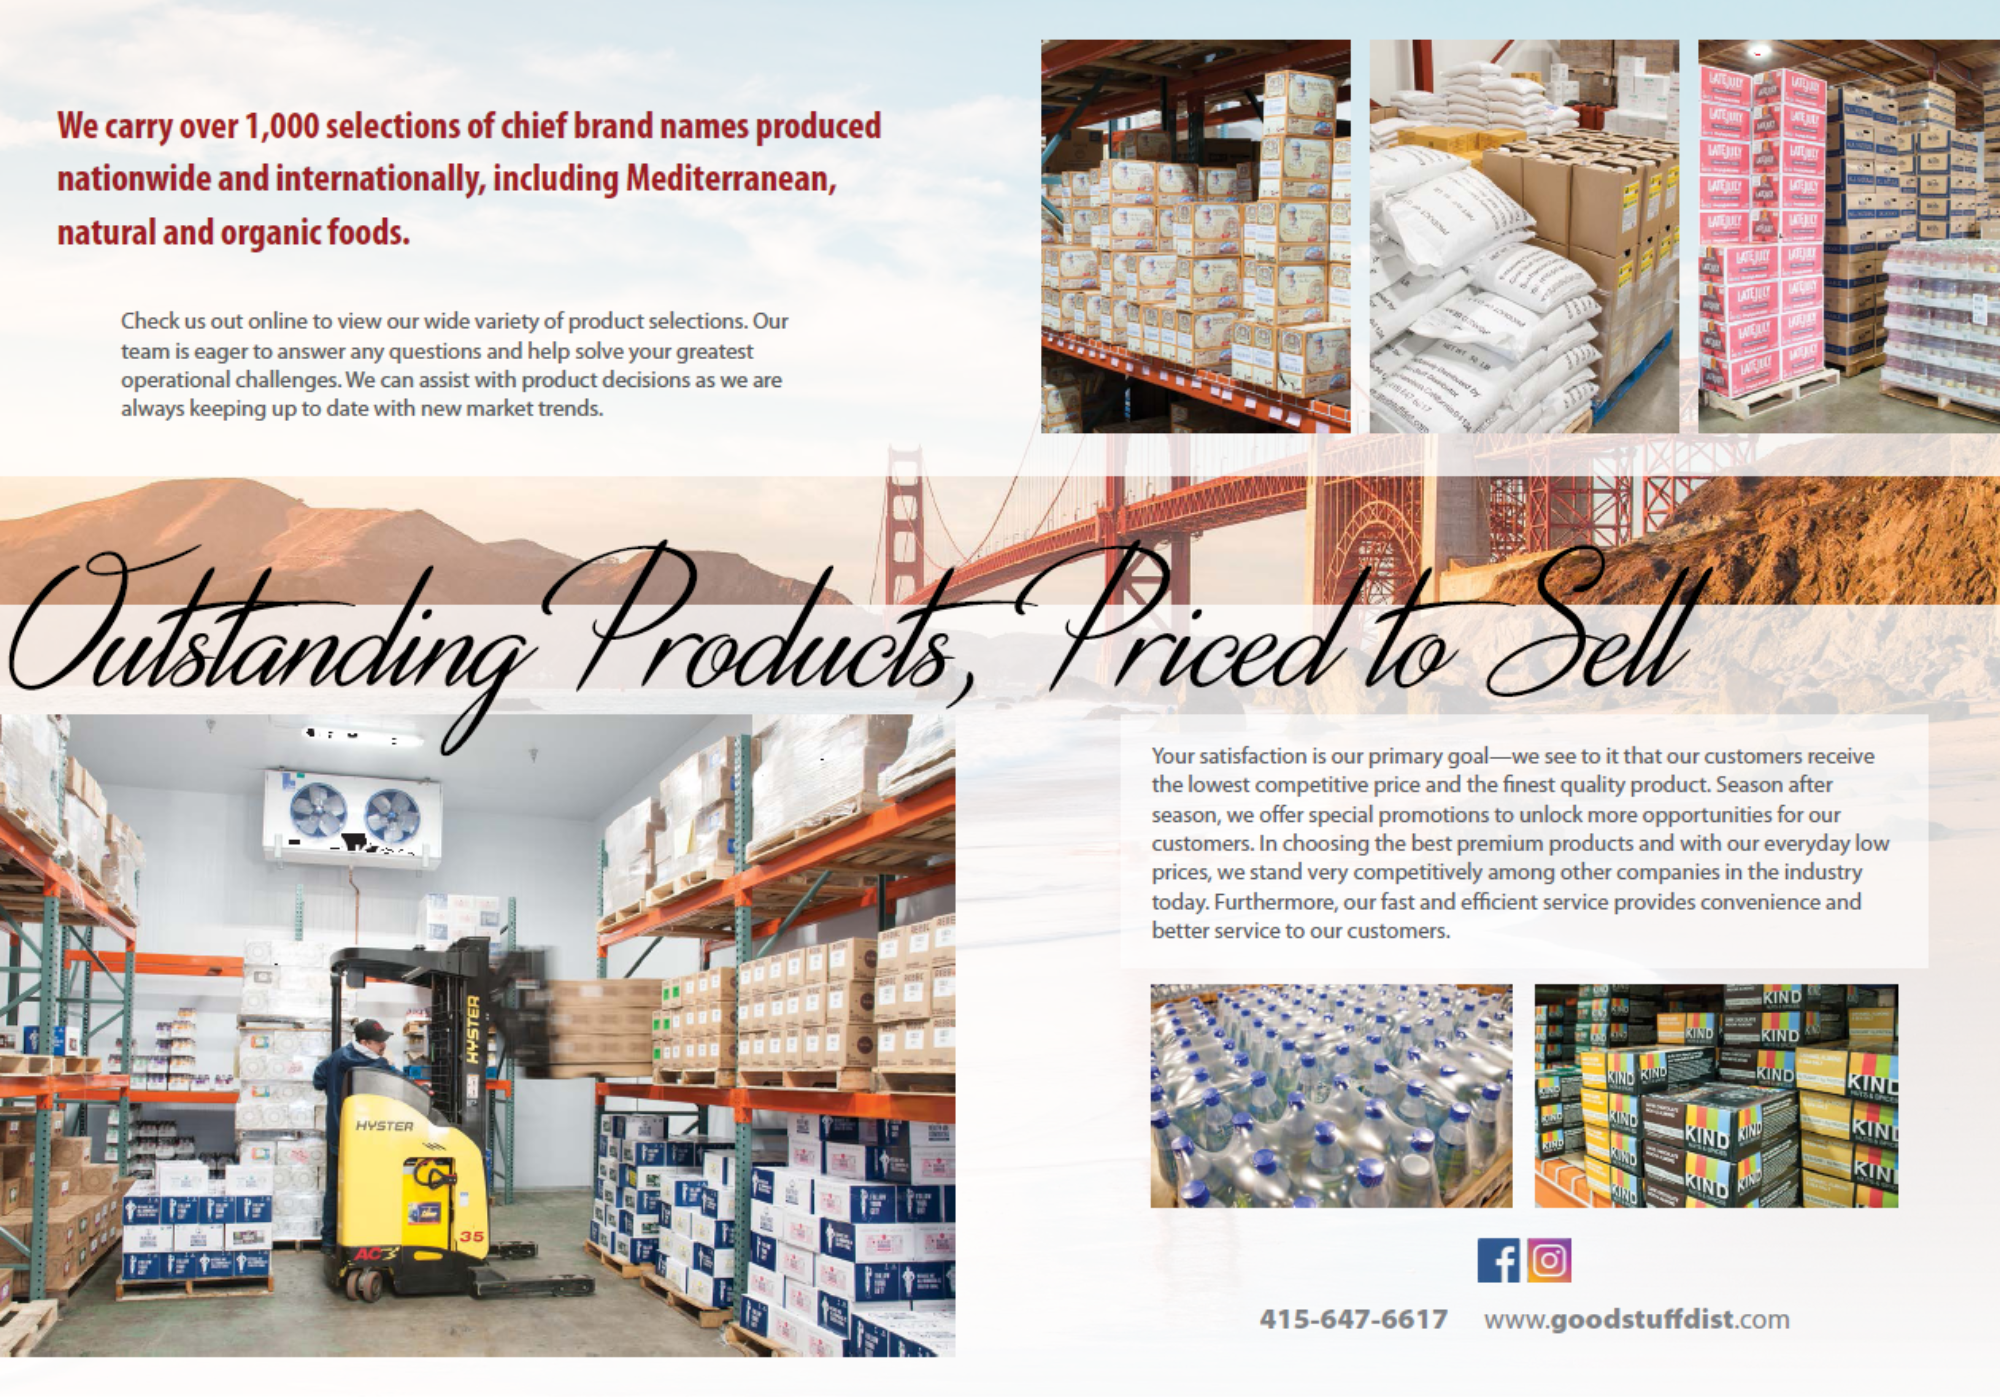 Good Stuff Distributor, Inc  | Wholesale Distributor for